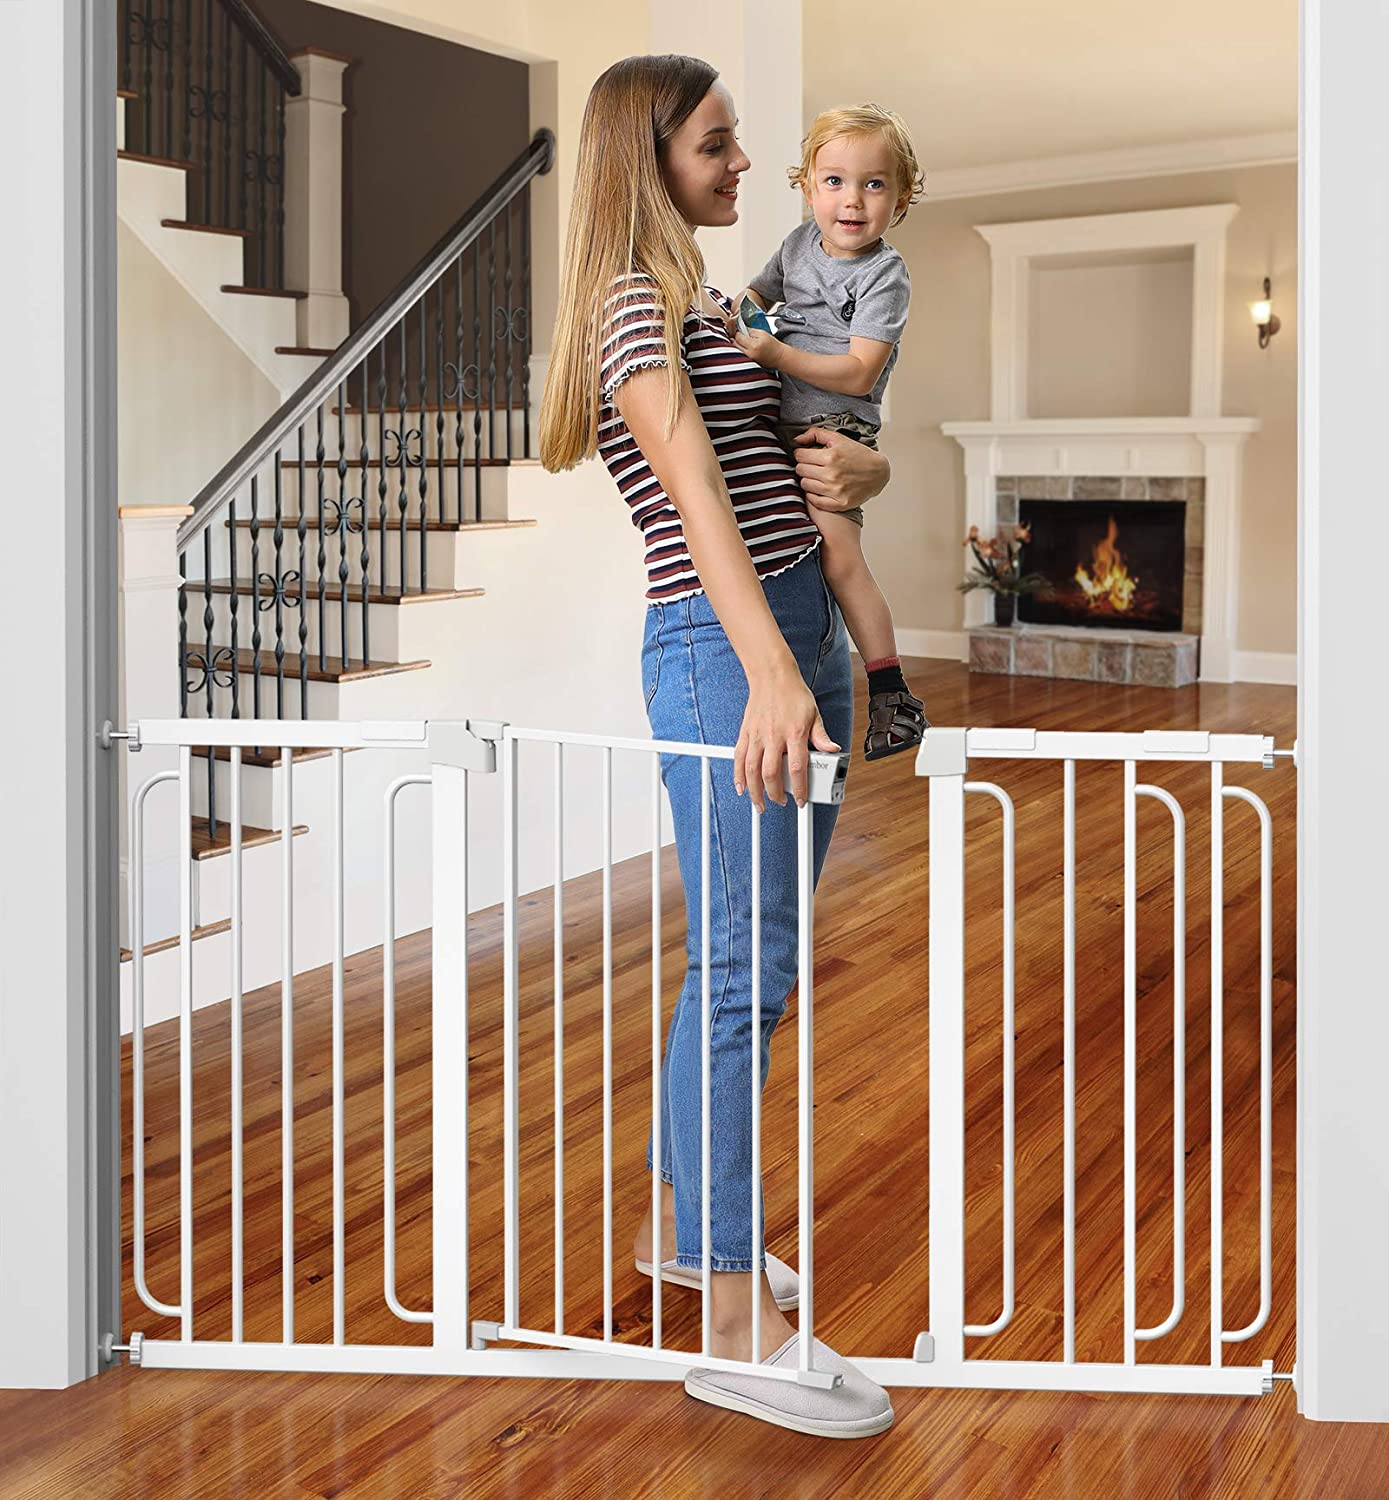 Cumbor Baby Gate for Stairs, Extra Wide 57-Inch Dog Gate for Doorways, Pressure Mounted Walk Through Safety Child Gate for Kids Toddler, Adjustable Tall Pet Puppy Fence Gate, White